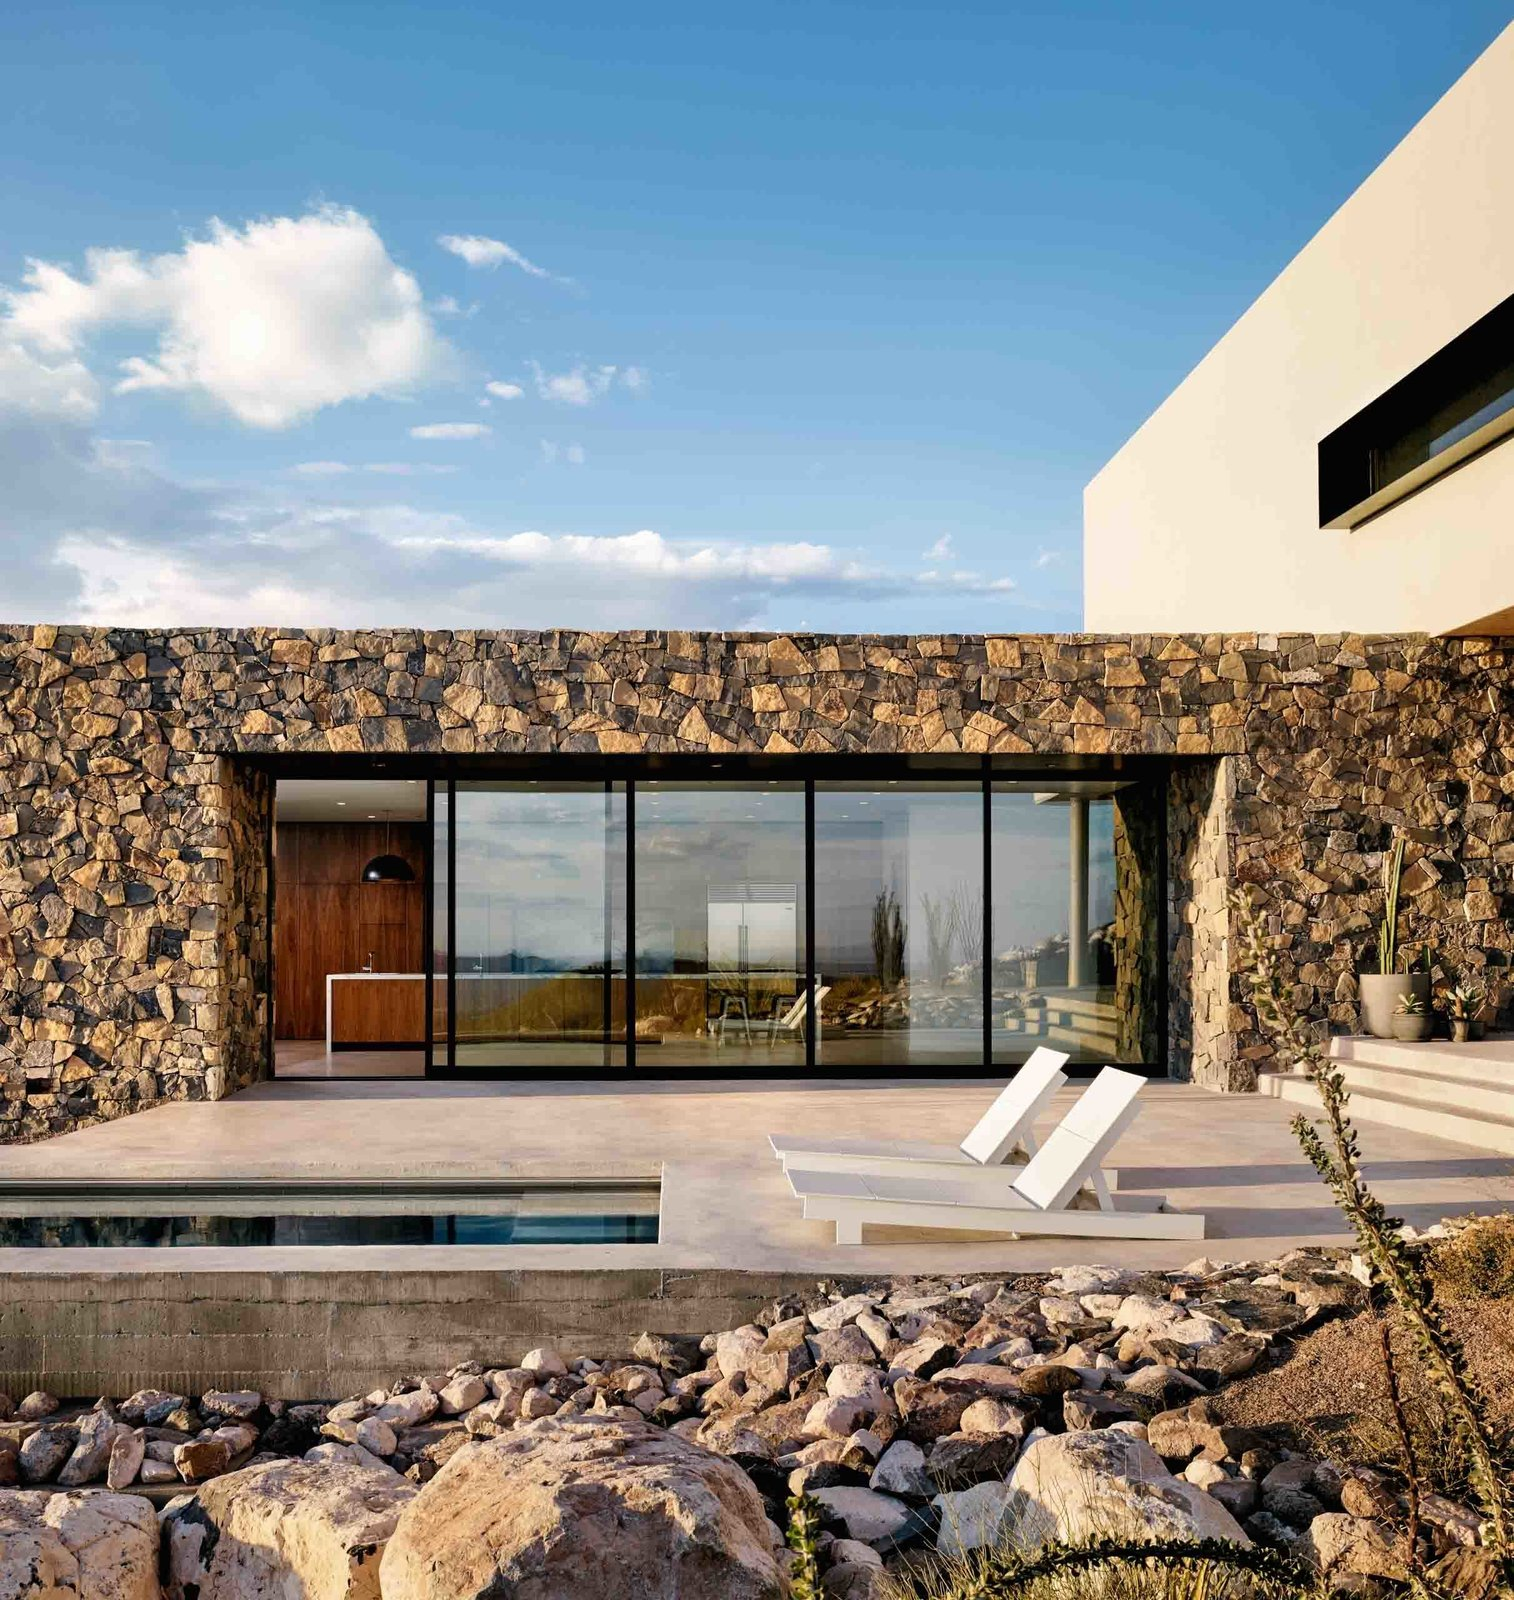 When the massive west-facing multi-slide door is open, cool Texas breezes course through the home's main volume.  West Texas Vistas